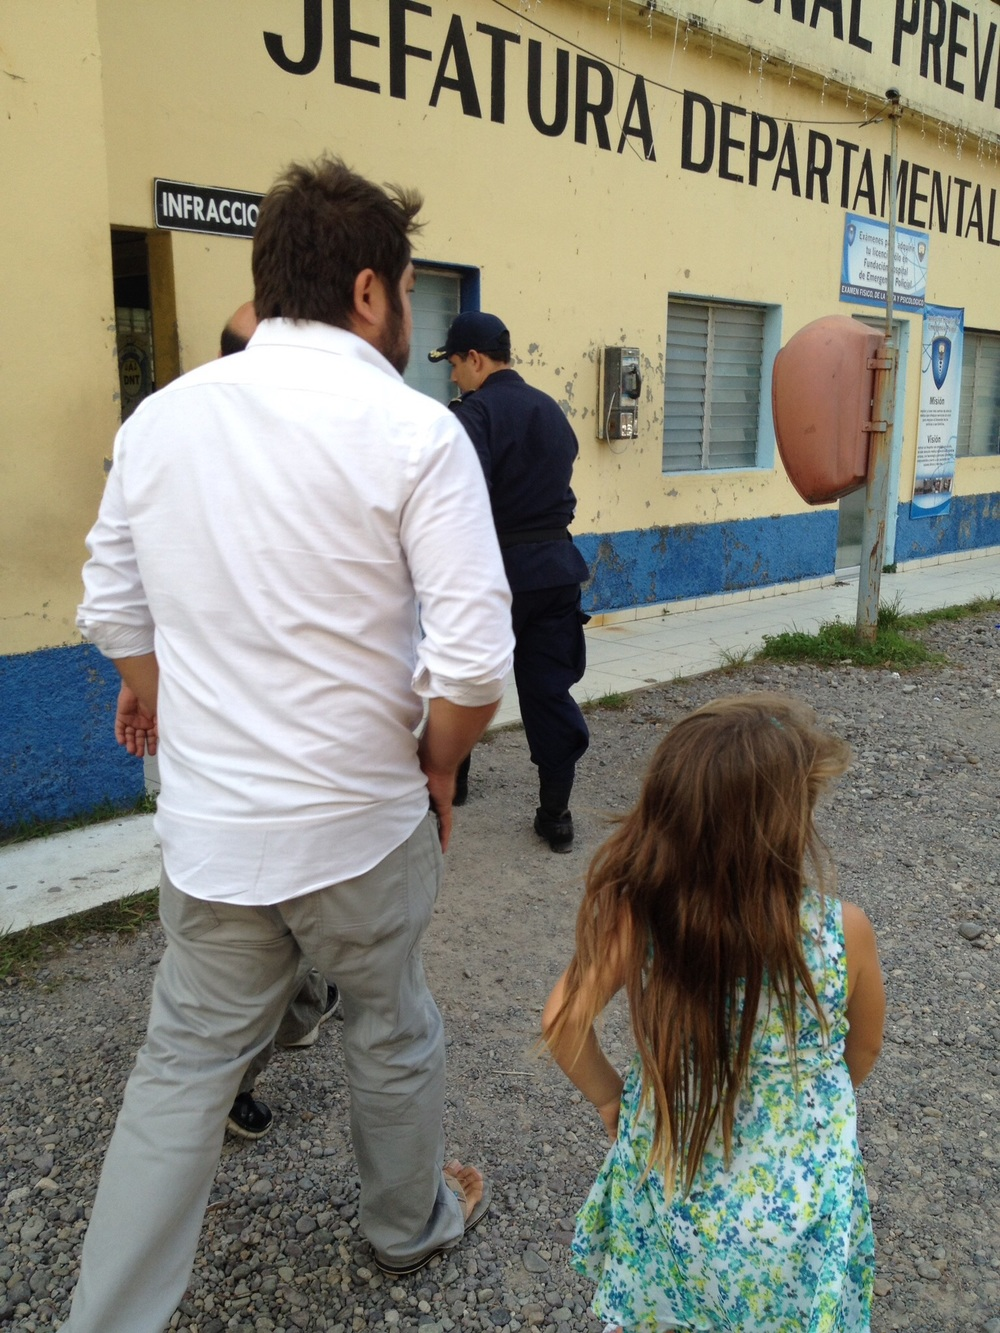 Javier Mendoza with his daughter on a tour of the Honduran National Police station in La Ceiba Honduras